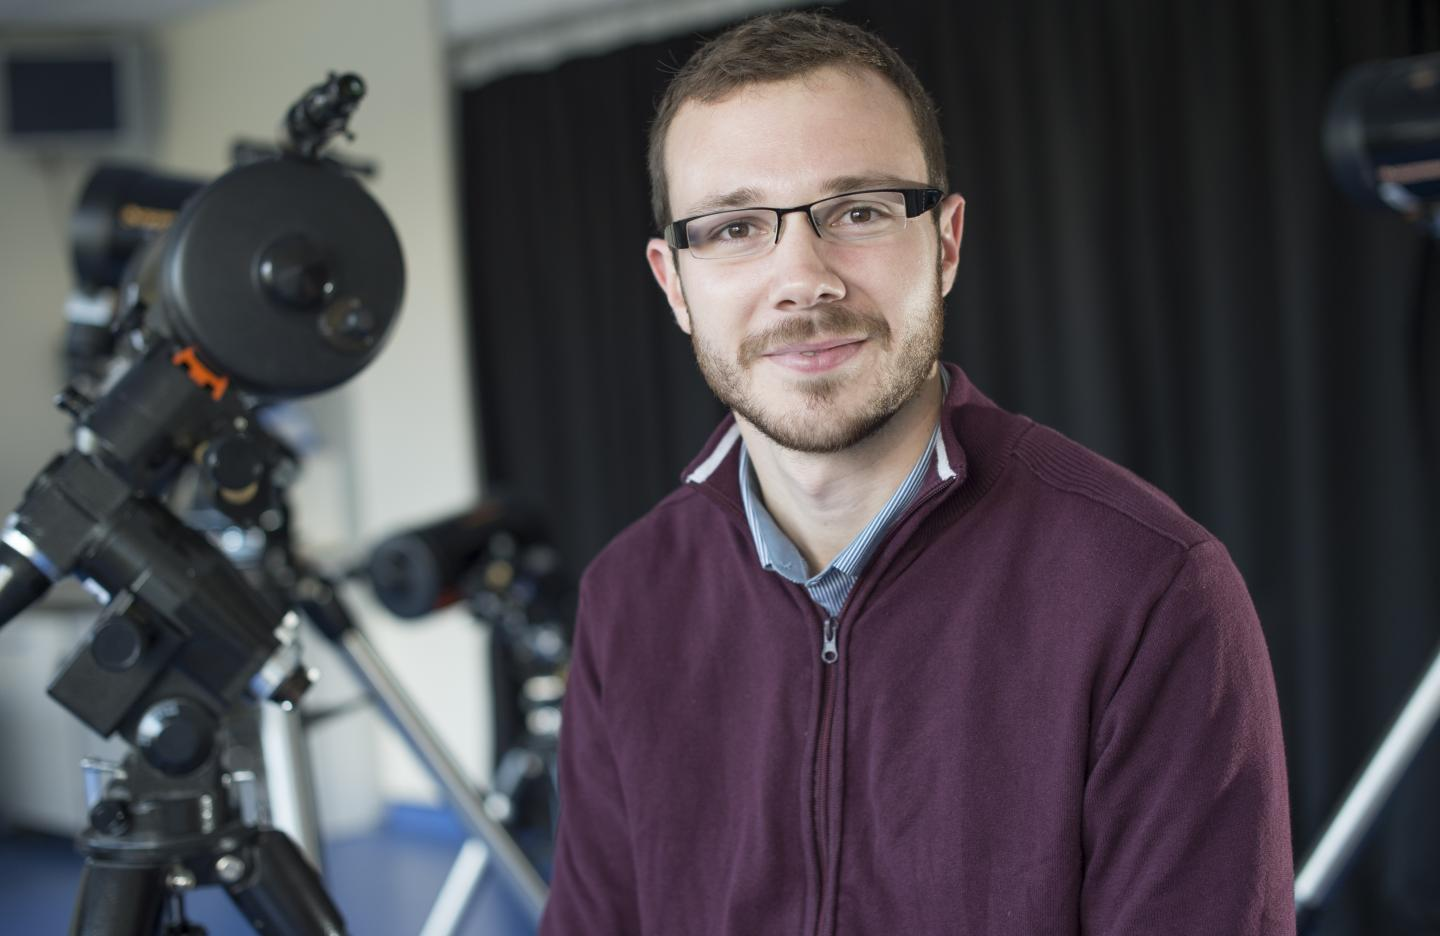 Dr. David Armstrong from the University of Warwick's Astronomy and Astrophysics Group